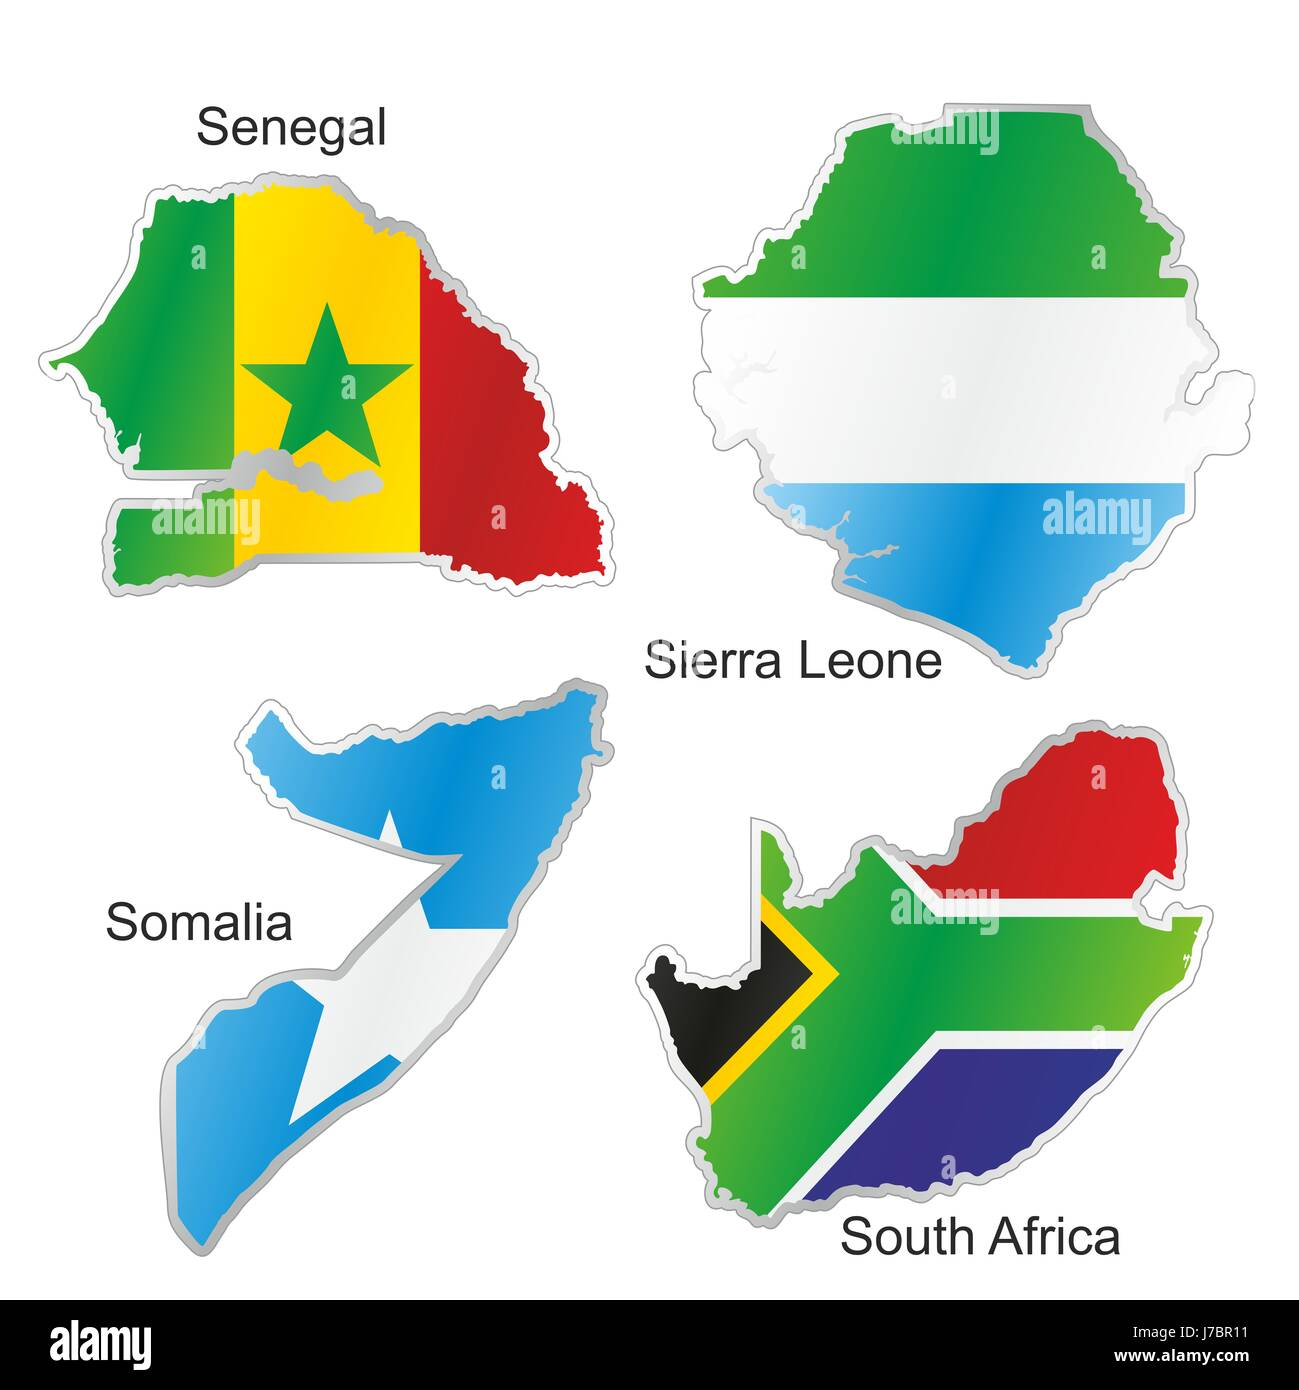 africa flag south senegal somalia map atlas map of the world ... on map of senegal africa, map of rwanda africa, map of morocco africa, map of somaliland africa, map of tanzania africa, map of africa with countries, map of gabon africa, map of madagascar africa, map of zimbabwe africa, map of kenya africa, map of ghana africa, map of nigeria africa, map of south sudan africa, map of mauritius africa, physical map of africa, map of eritrea africa, map of mali africa, map of ethiopia africa, mogadishu africa, map of central african republic africa,